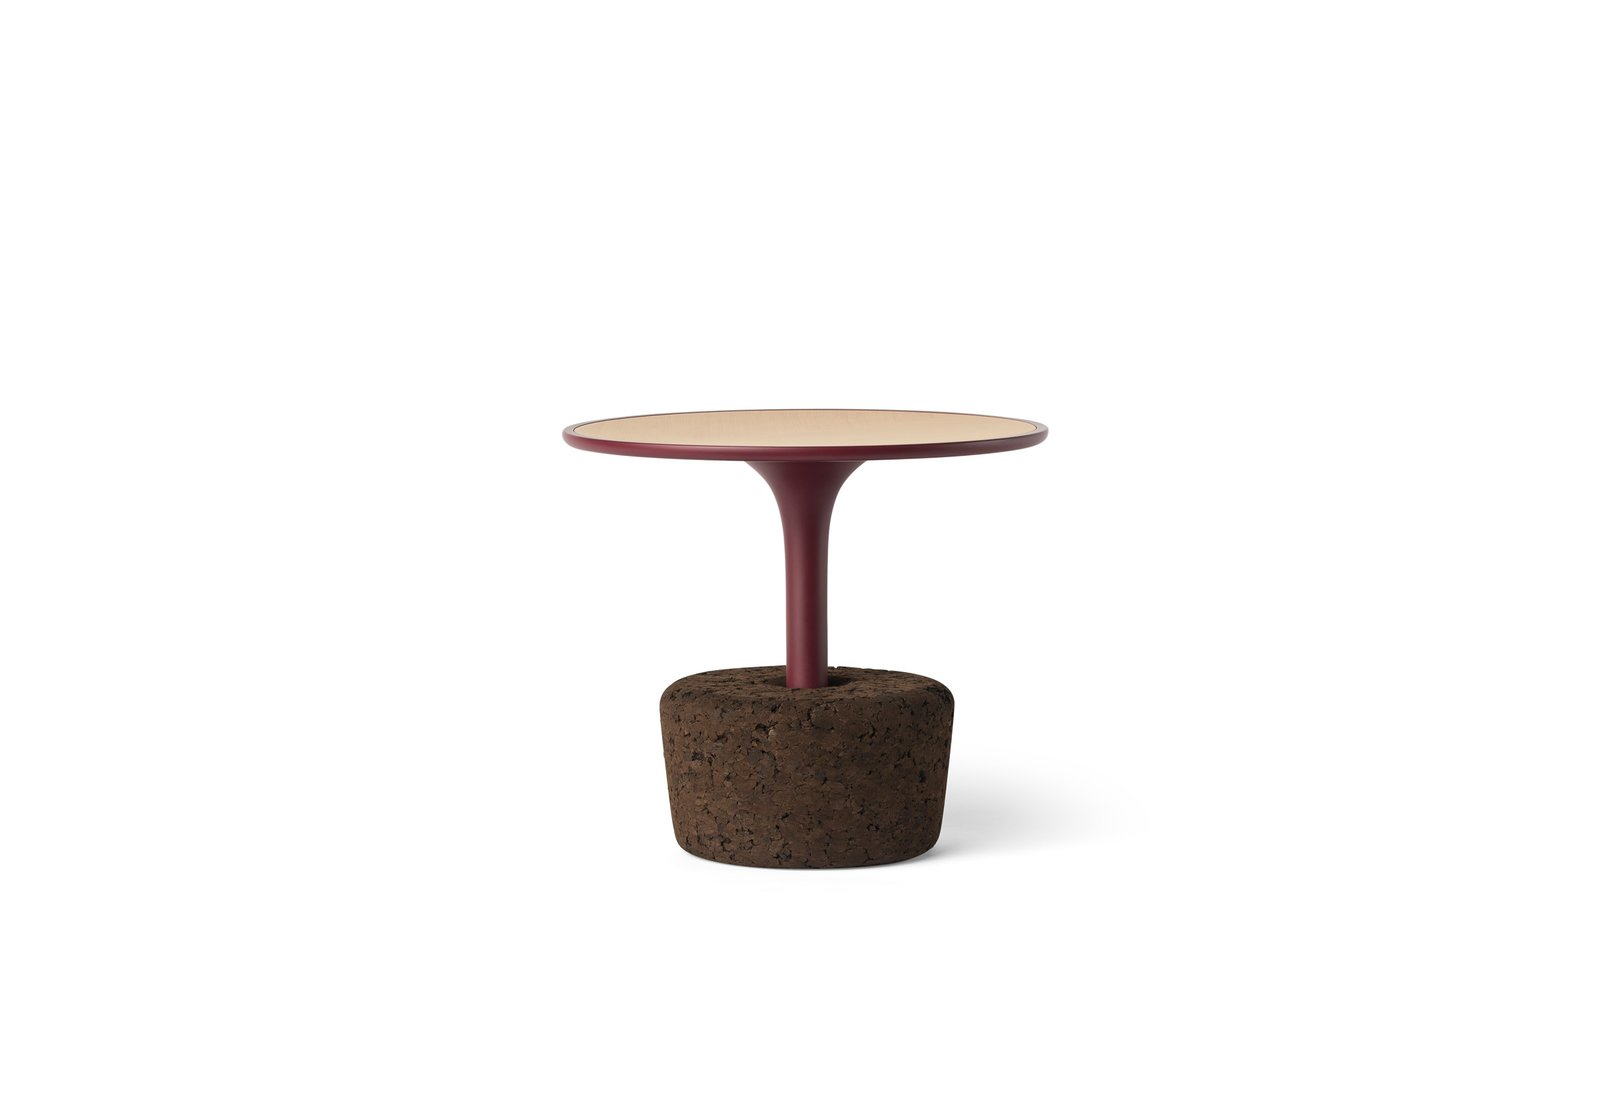 "Flora Small Low  FLORA is a set of coffee tables that refers to the plants we offer to the ones we love, so there is a similarity between taking care of plants and taking care of the objects. These versatile tables combine natural materials, with four sizes and six different colored frame finishes and may be used separately or together.  Size  Ø40 x H35 cm / Ø15,7'' x H14''.  Weight  4,3 kg / 9,5 lbs.  Search ""용산출장안마[Ø1Ø_6445_9663]→【콜걸미녀】용산출장마사지 용산출장아가씨콜걸Ⅳ용산출장안마호텔【S급미녀girl】 용산출장안마후불제 용산출장안마야한곳㎚용산출장샵코스 용산출장맛사지레전드 용산출장안마역대급Δ용산출장1등업소"""